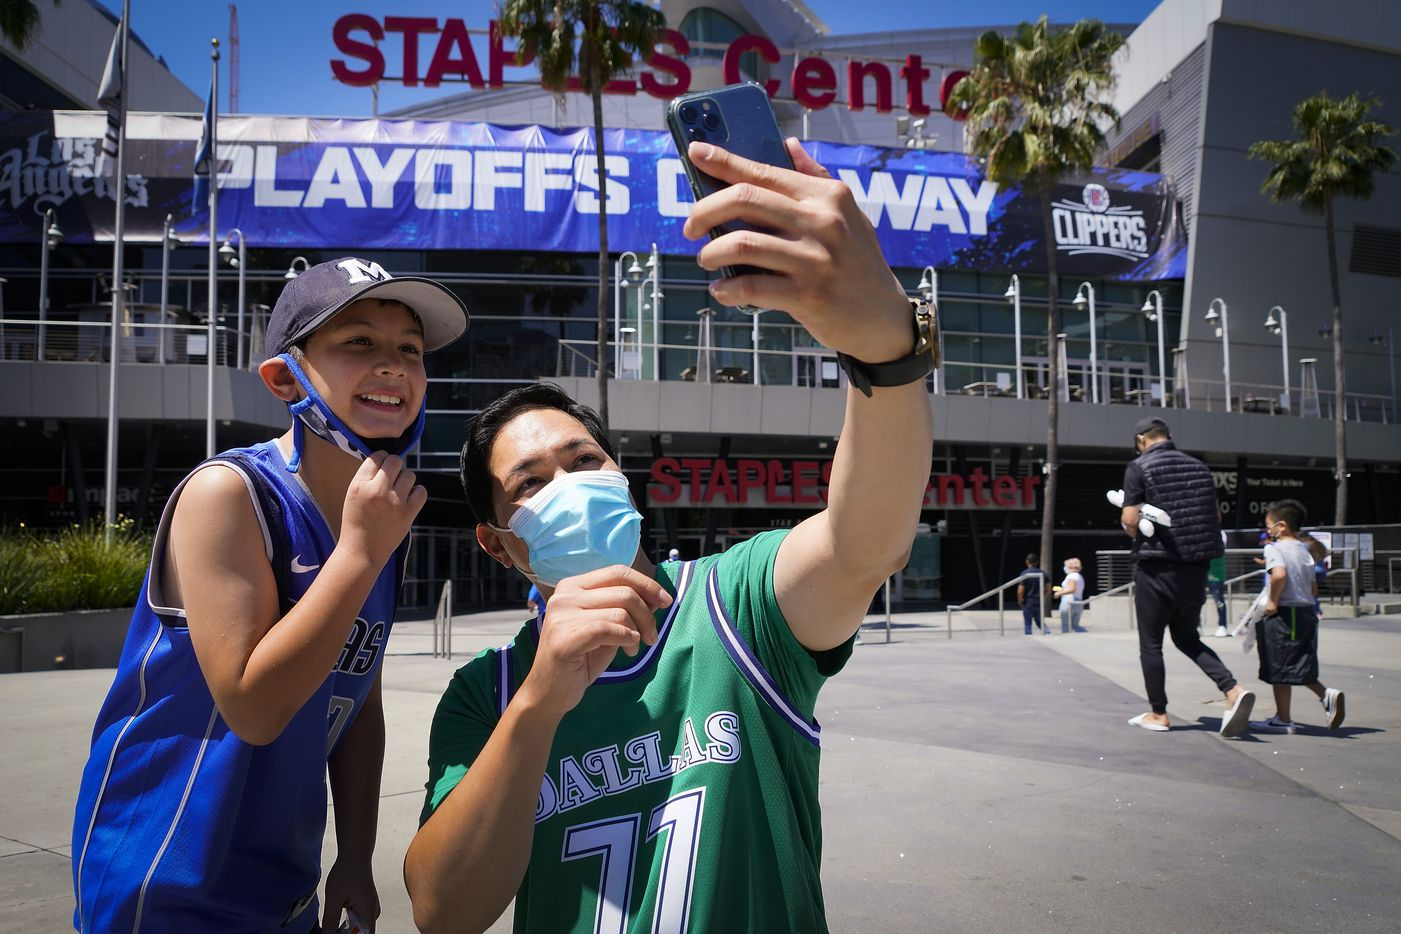 Dallas Mavericks fan Michael Chen and his son Jack, 8, take a selfie outside the arena before Game 7 of an NBA playoff basketball series against the LA Clippers at the Staples Center on Sunday, June 6, 2021, in Los Angeles.